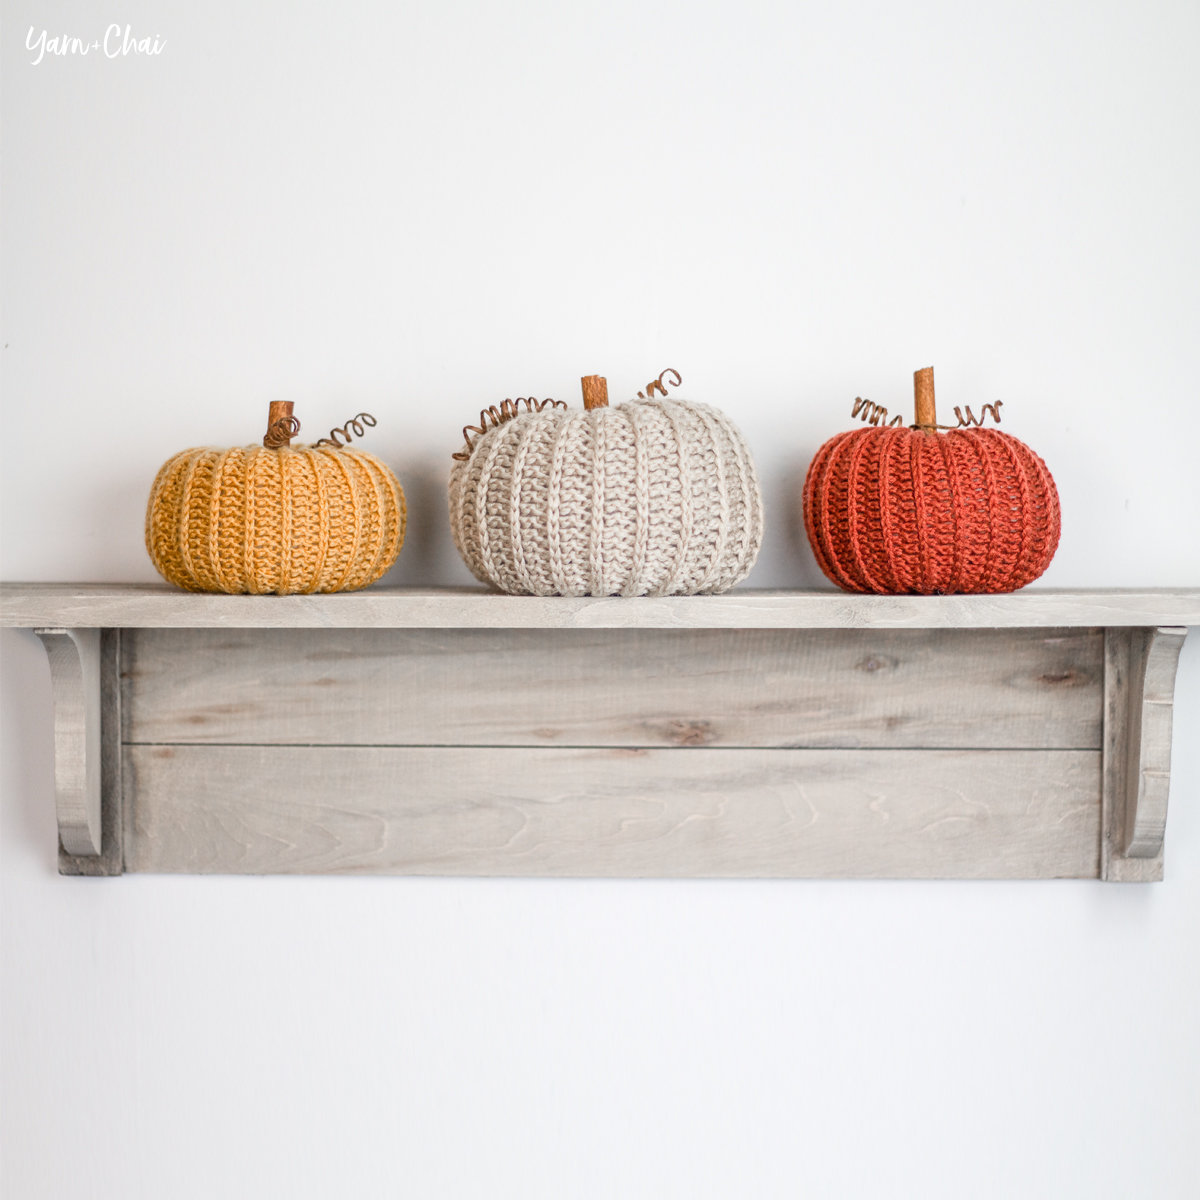 three autumn colored knitted pumpkins on a shelf